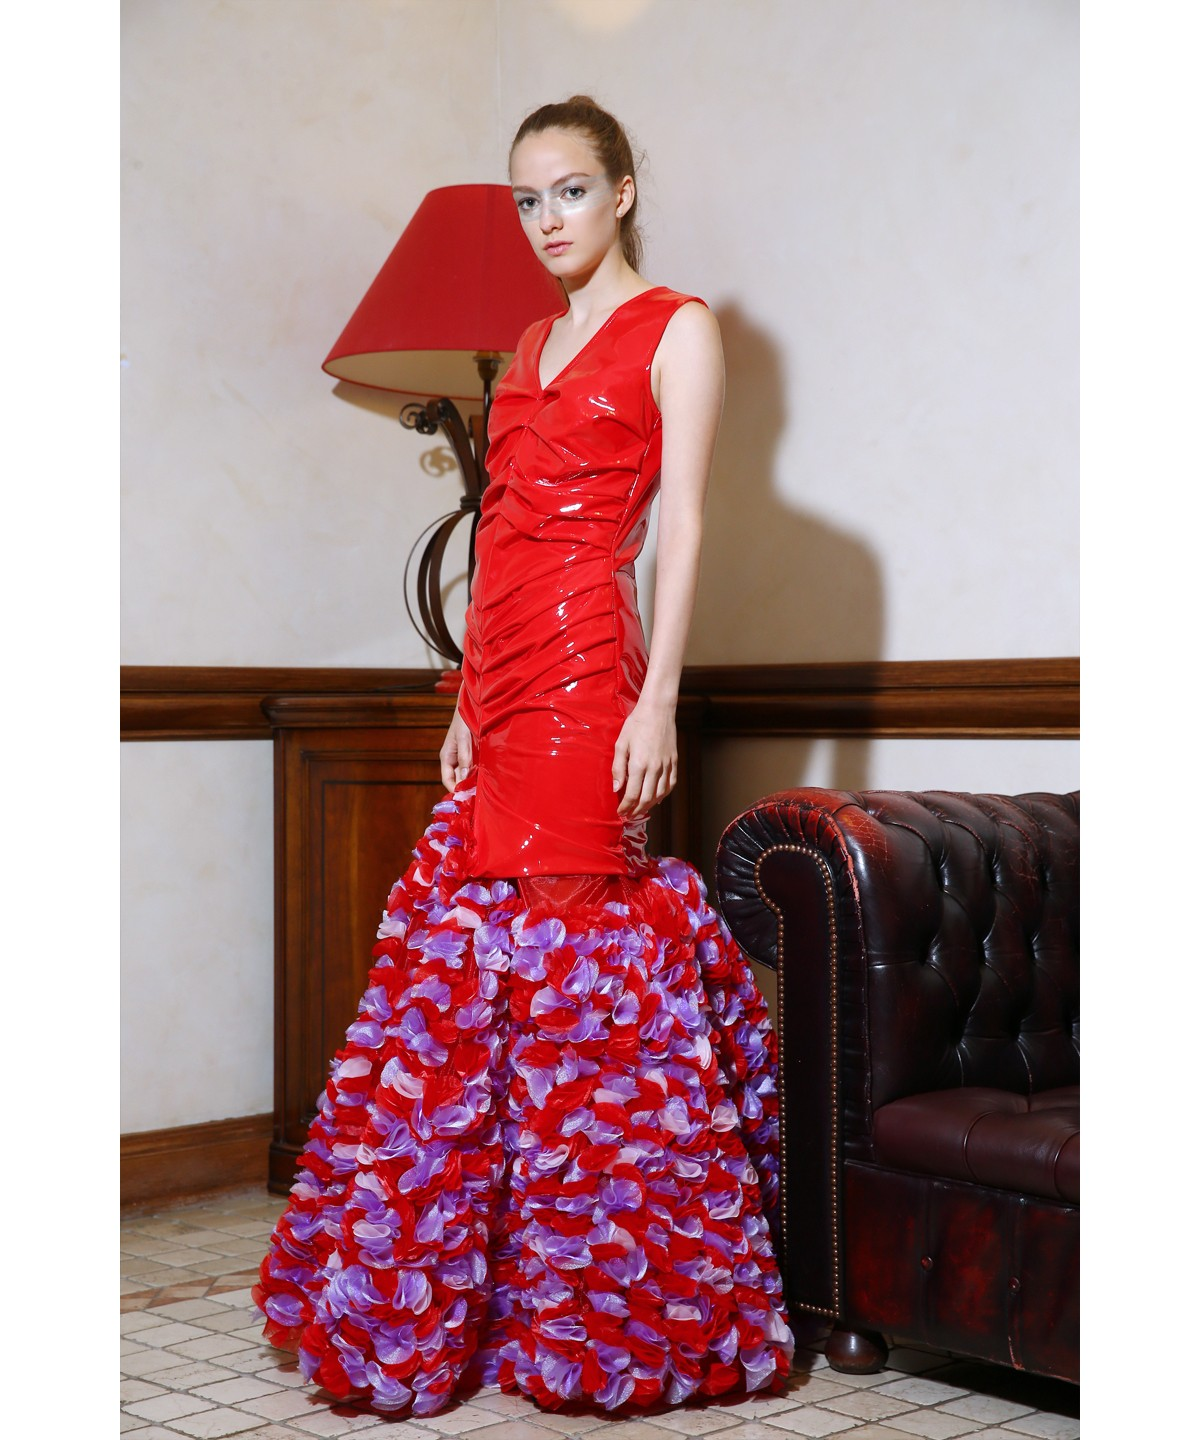 The Passion Gown